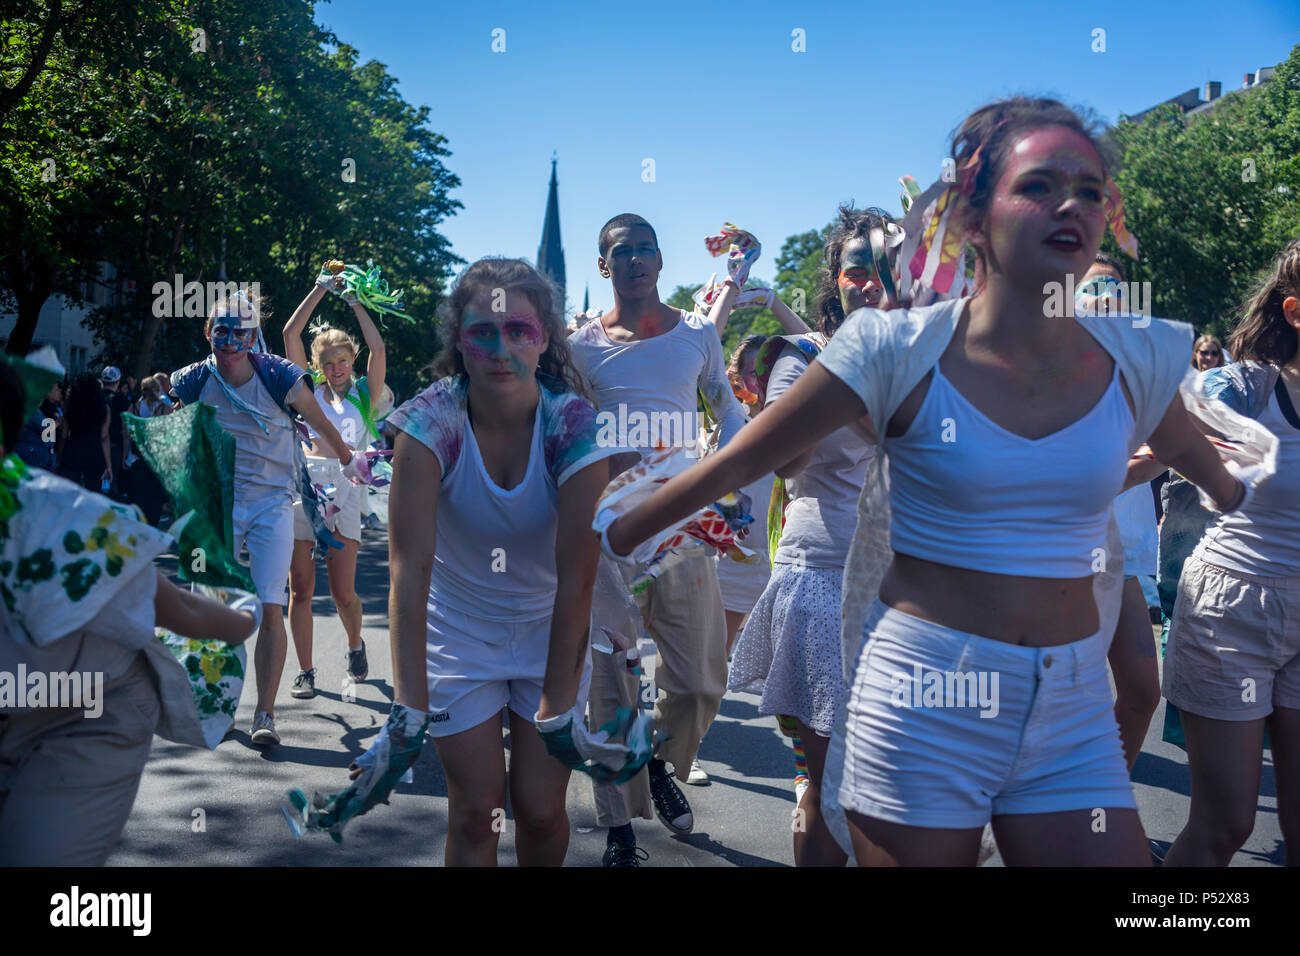 La street parade est le point culminant du Carnaval des cultures au cours de la Pentecôte week-end à Berlin. Photo Stock